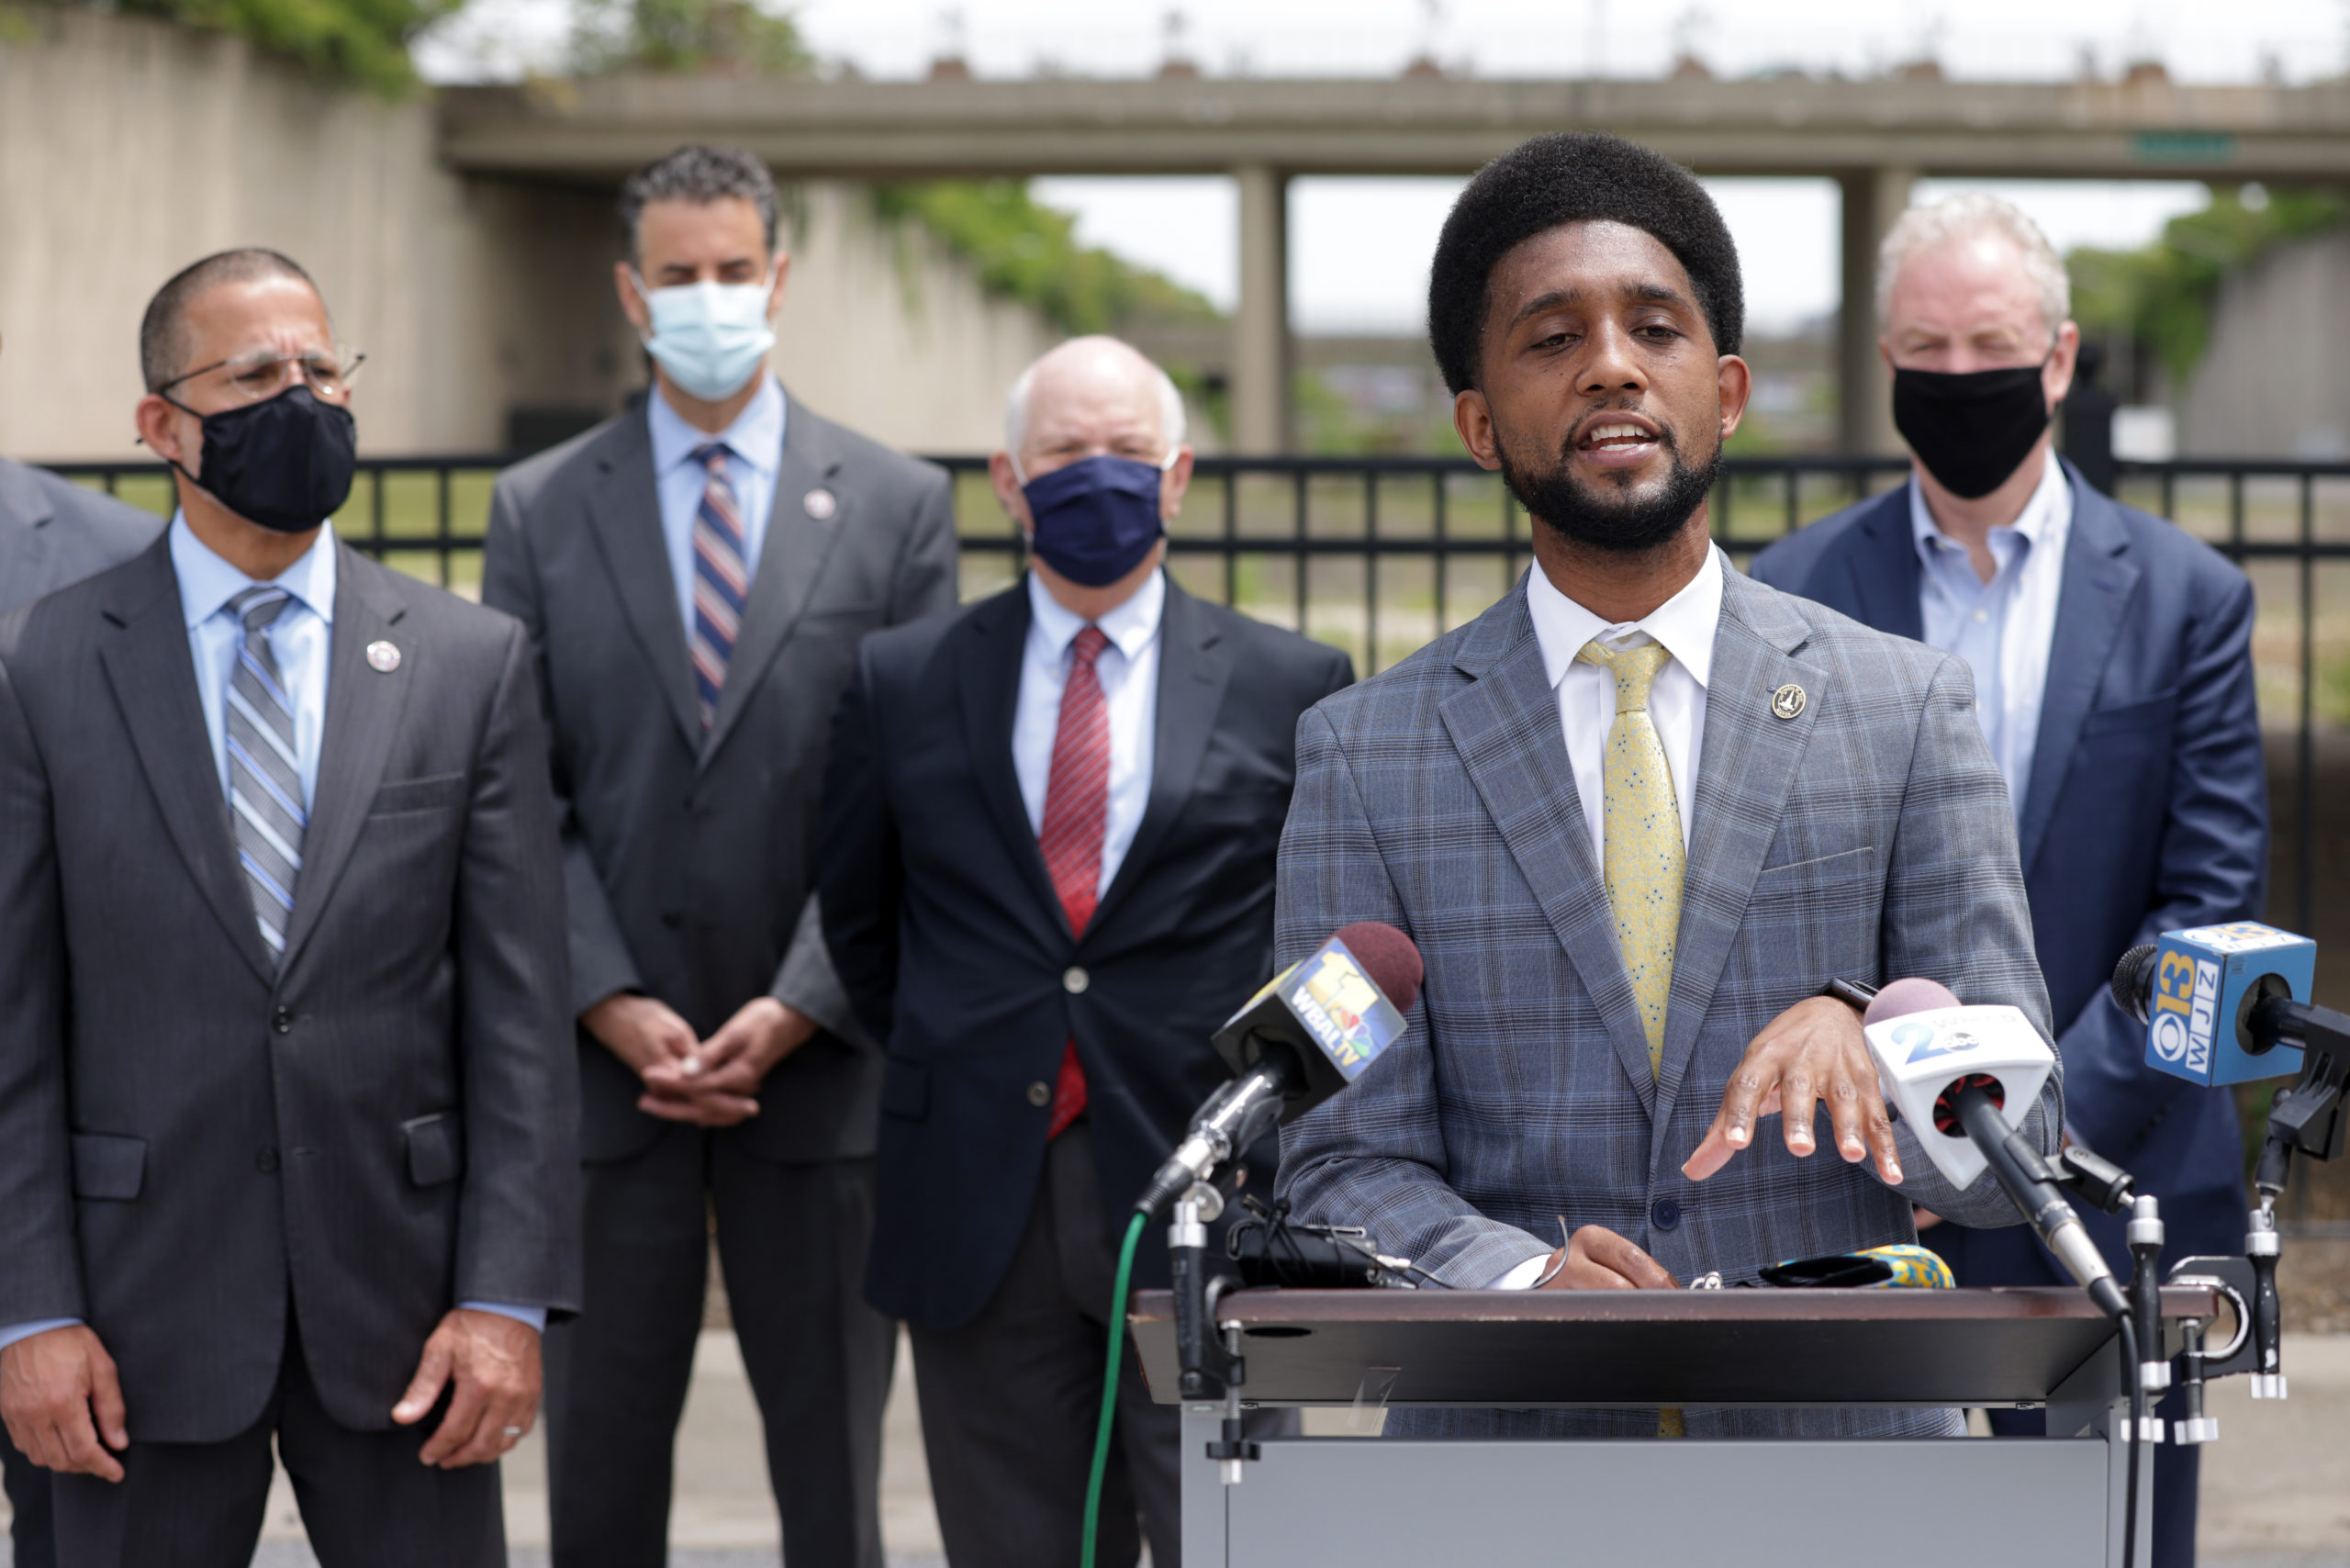 Democratic Mayor Brandon Scott speaks during a news conference on May 17 in Baltimore, Maryland. (Alex Wong/Getty Images)